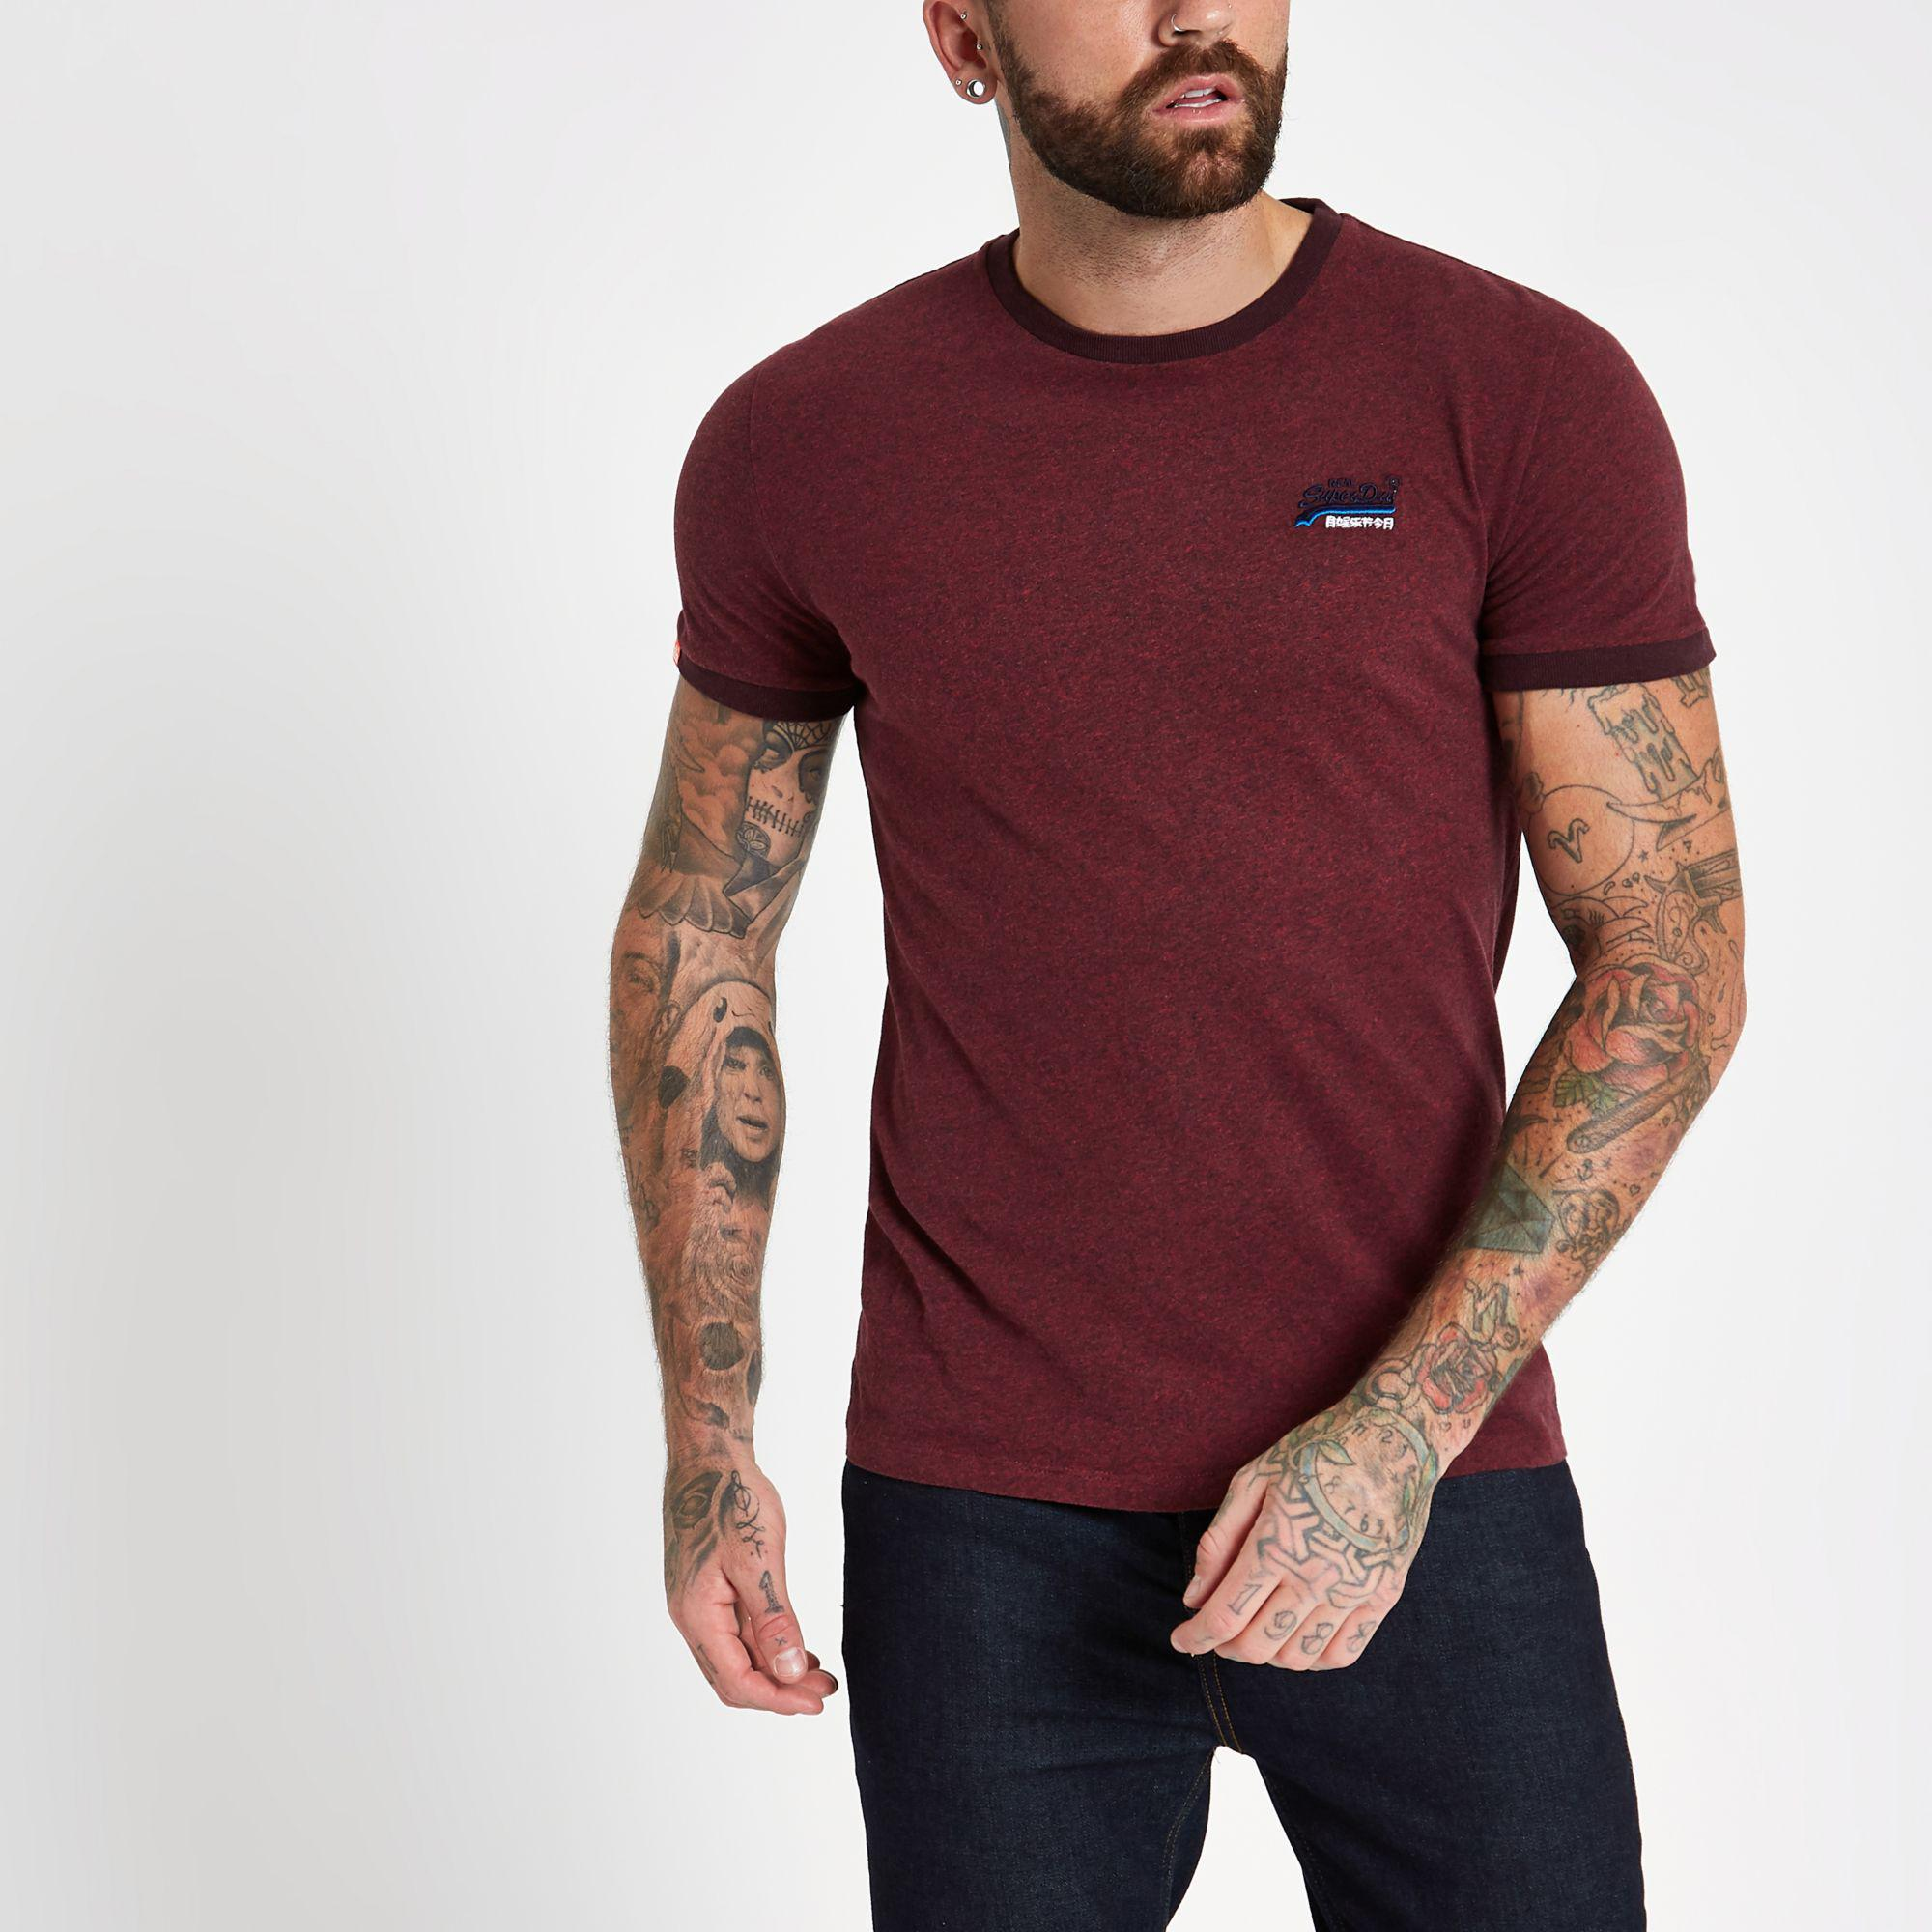 ab1ec4ab19ed Lyst - River Island Superdry Burgundy Crew Neck T-shirt in Red for Men